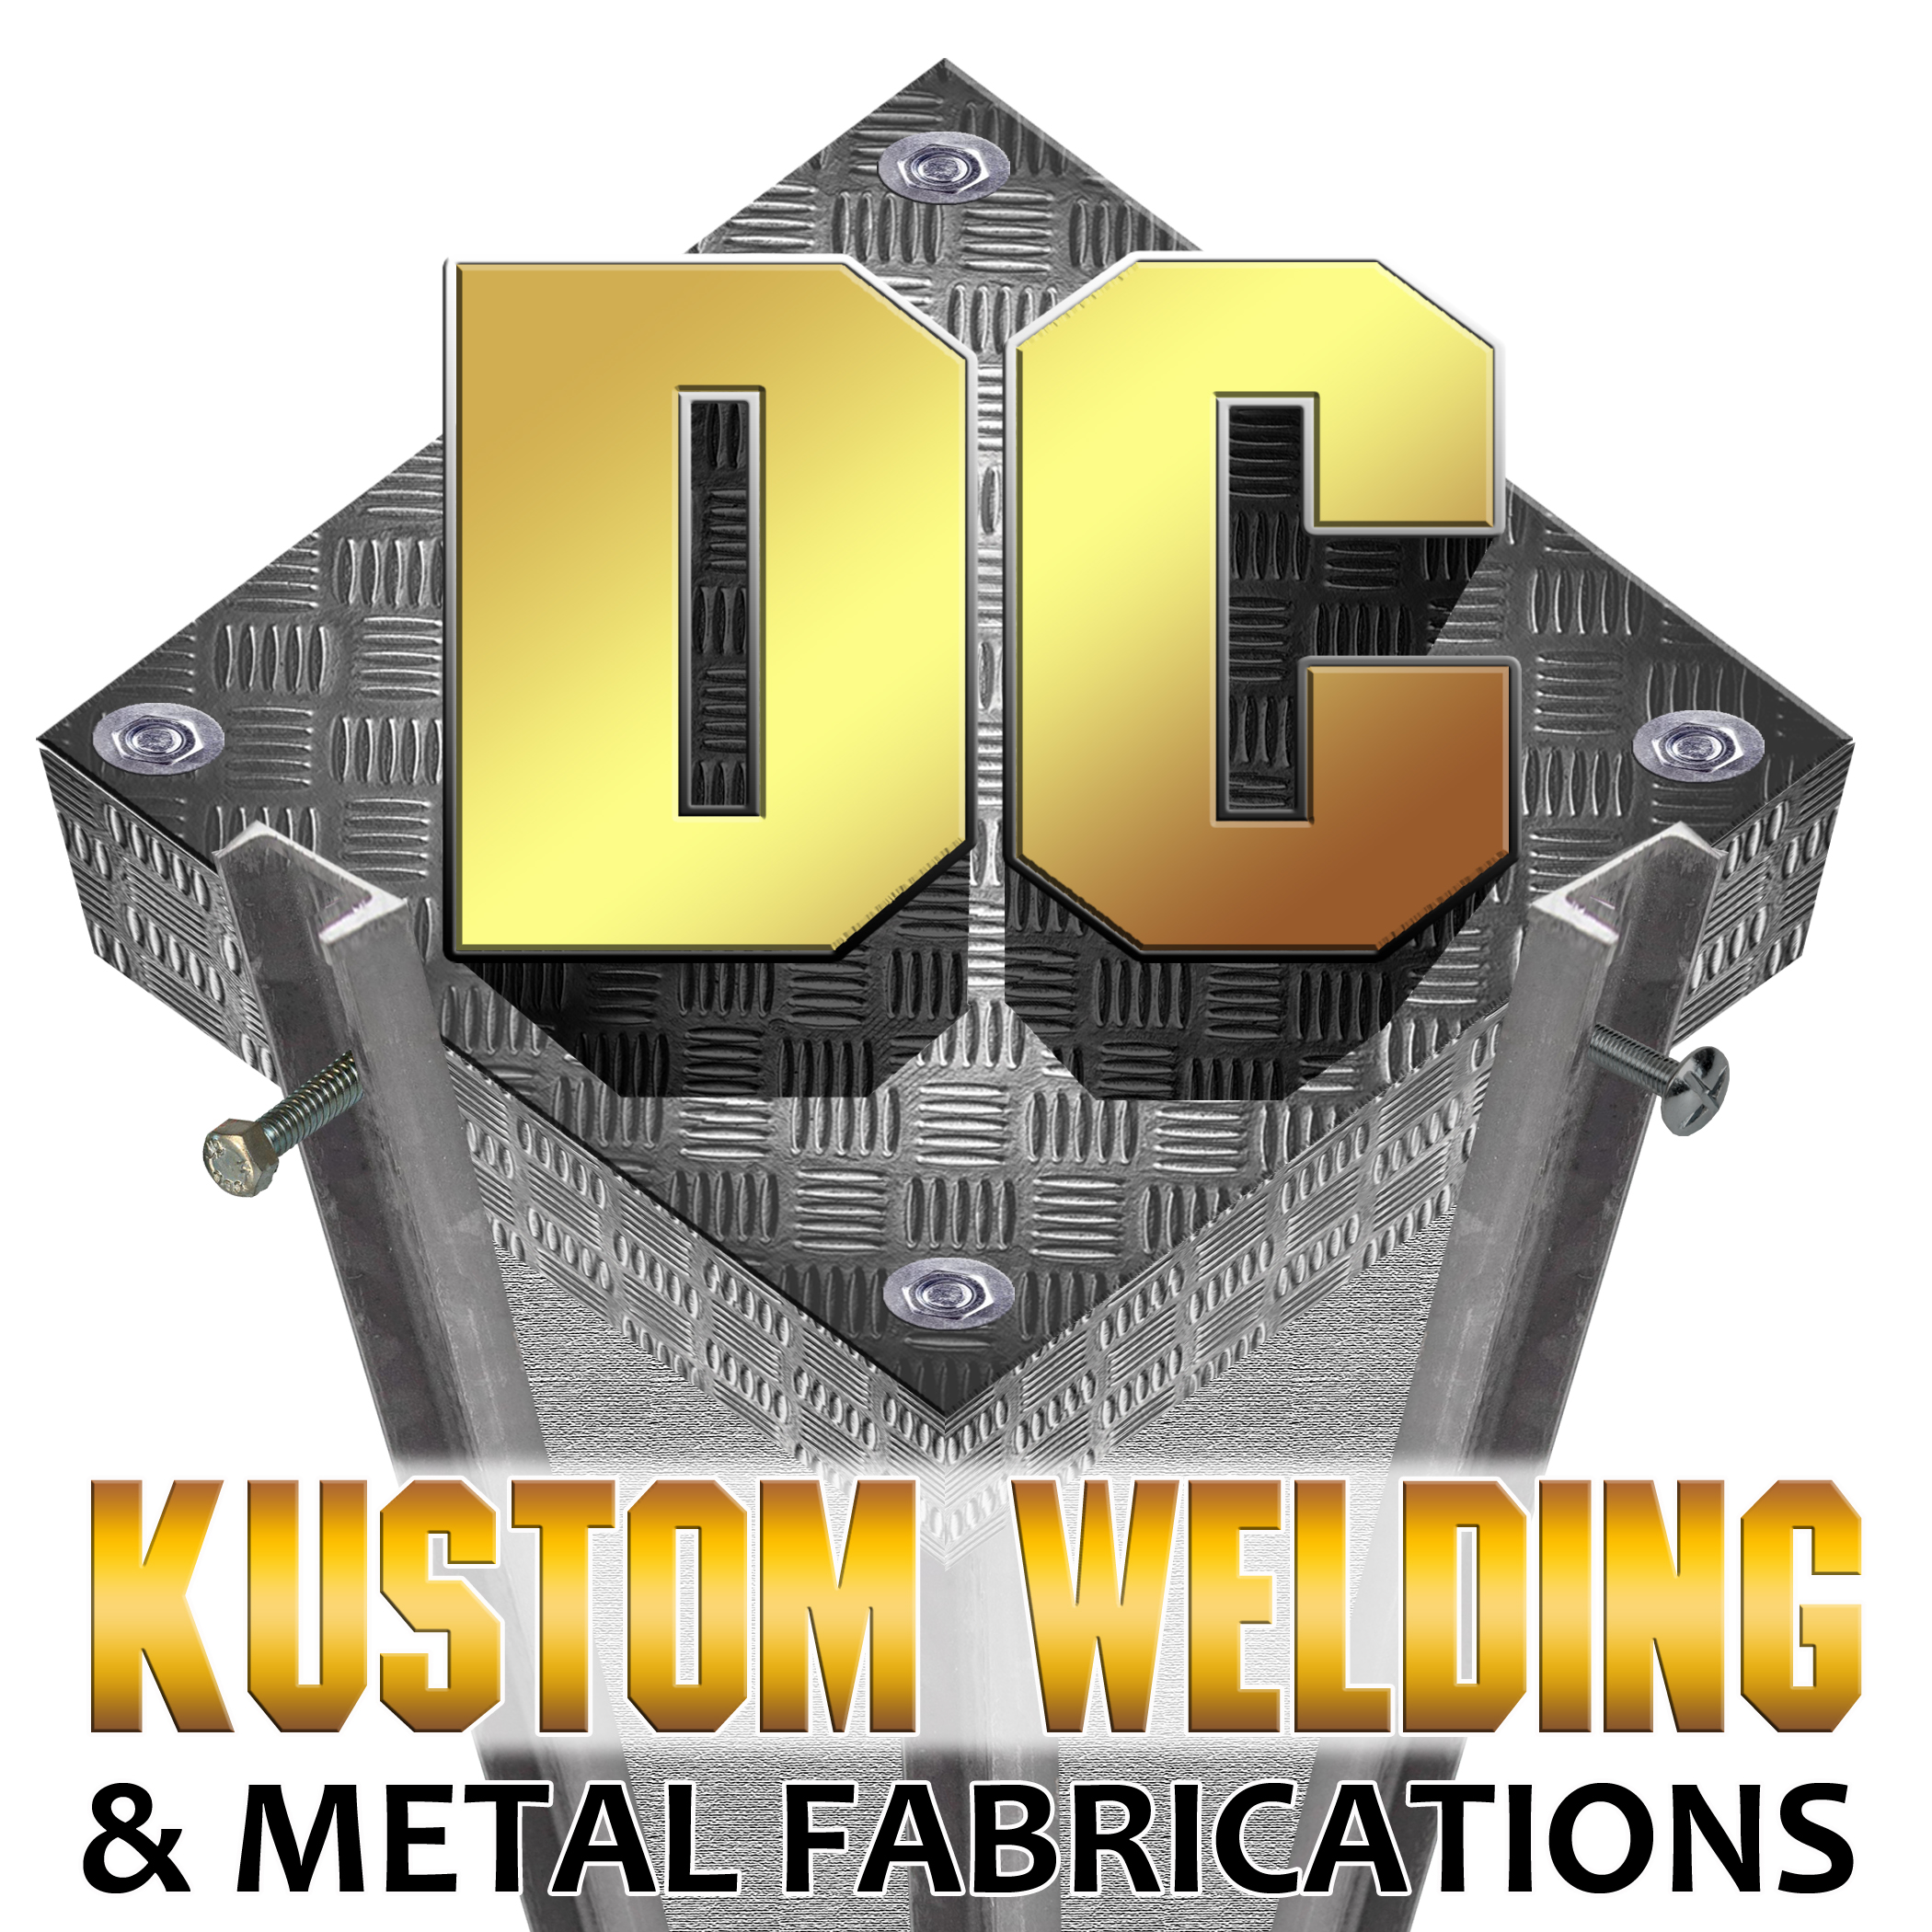 Logo Design by Kitz Malinao - Entry No. 12 in the Logo Design Contest Imaginative Logo Design for DC KUSTOM WELDING & METAL FABRICATION.